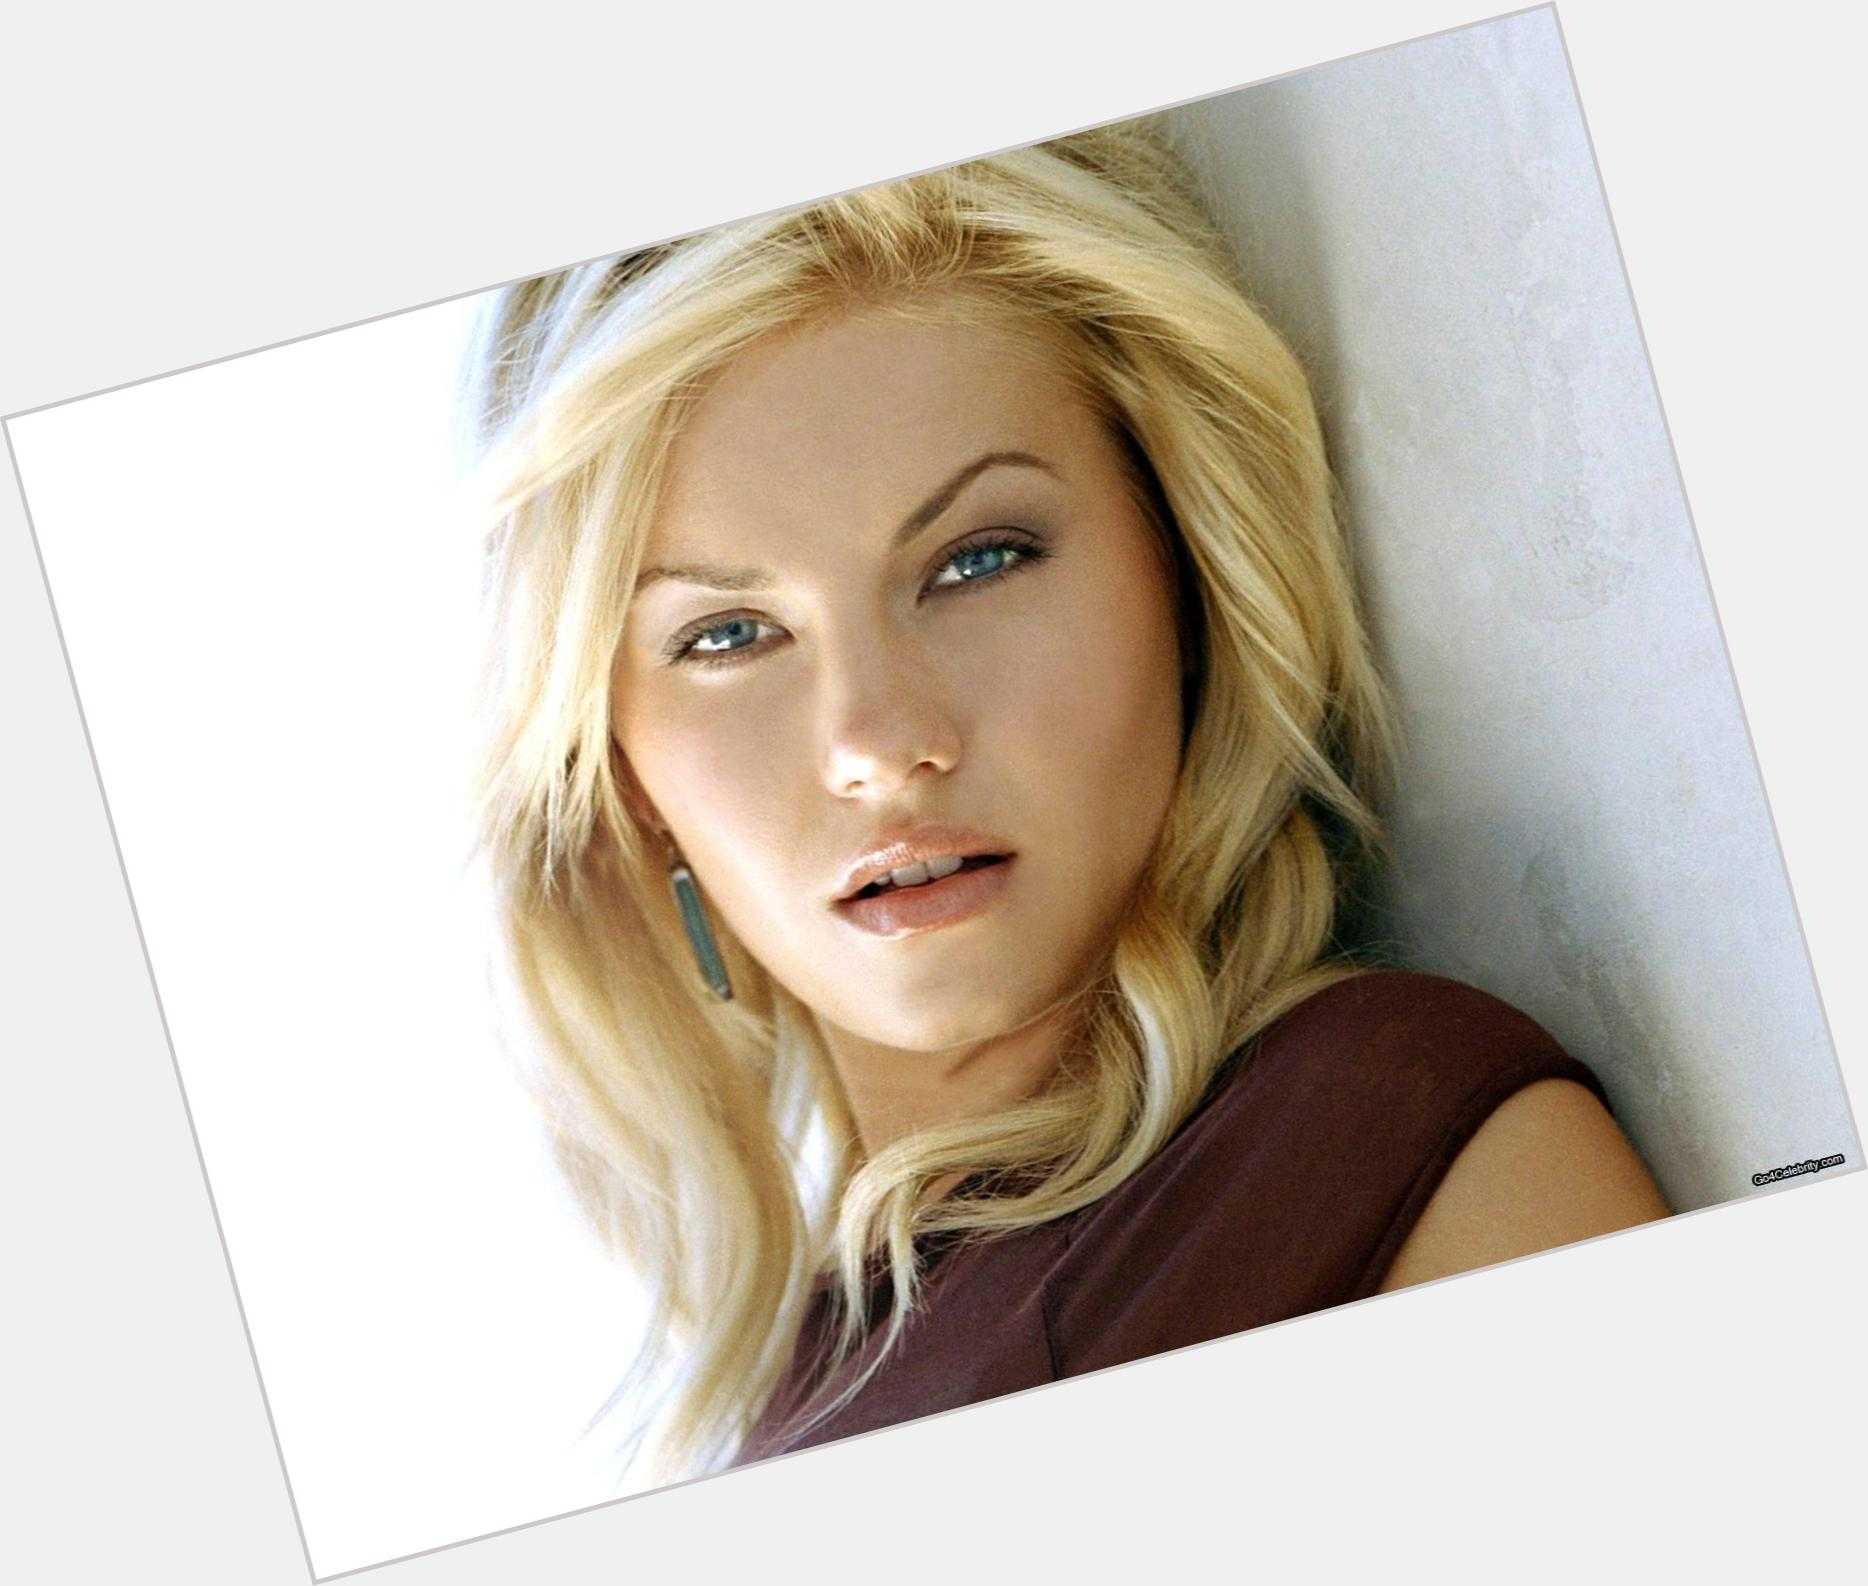 cuthbert black single women Elisha cuthbert bio - sexy biography, hot photos, and links to twitter, facebook & official websites - smartasses top 100 sexiest women alive.